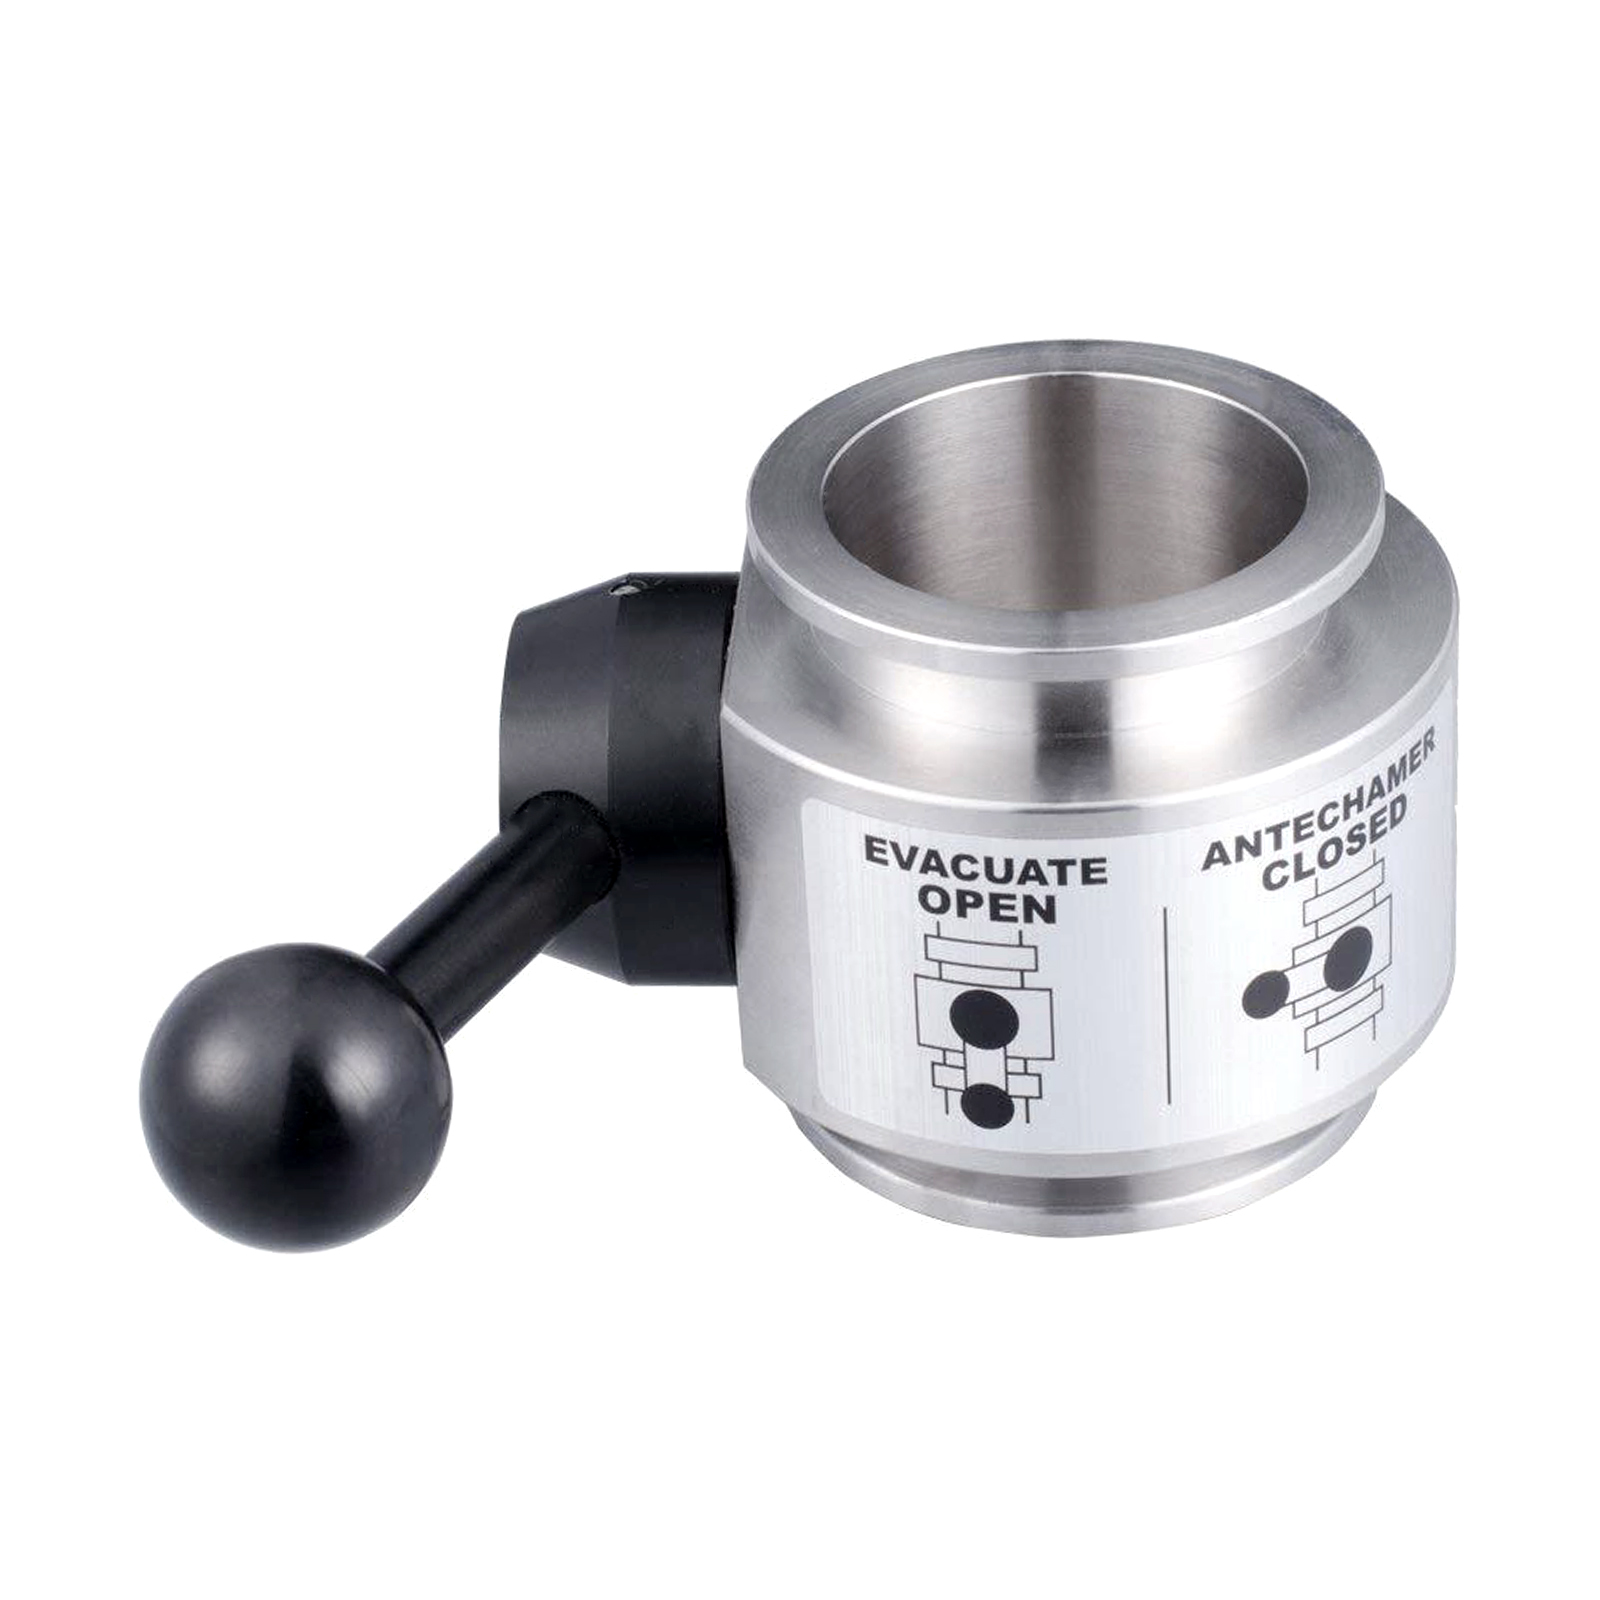 Principle, Application and Characteristics of Emergency Shut-Off Valve